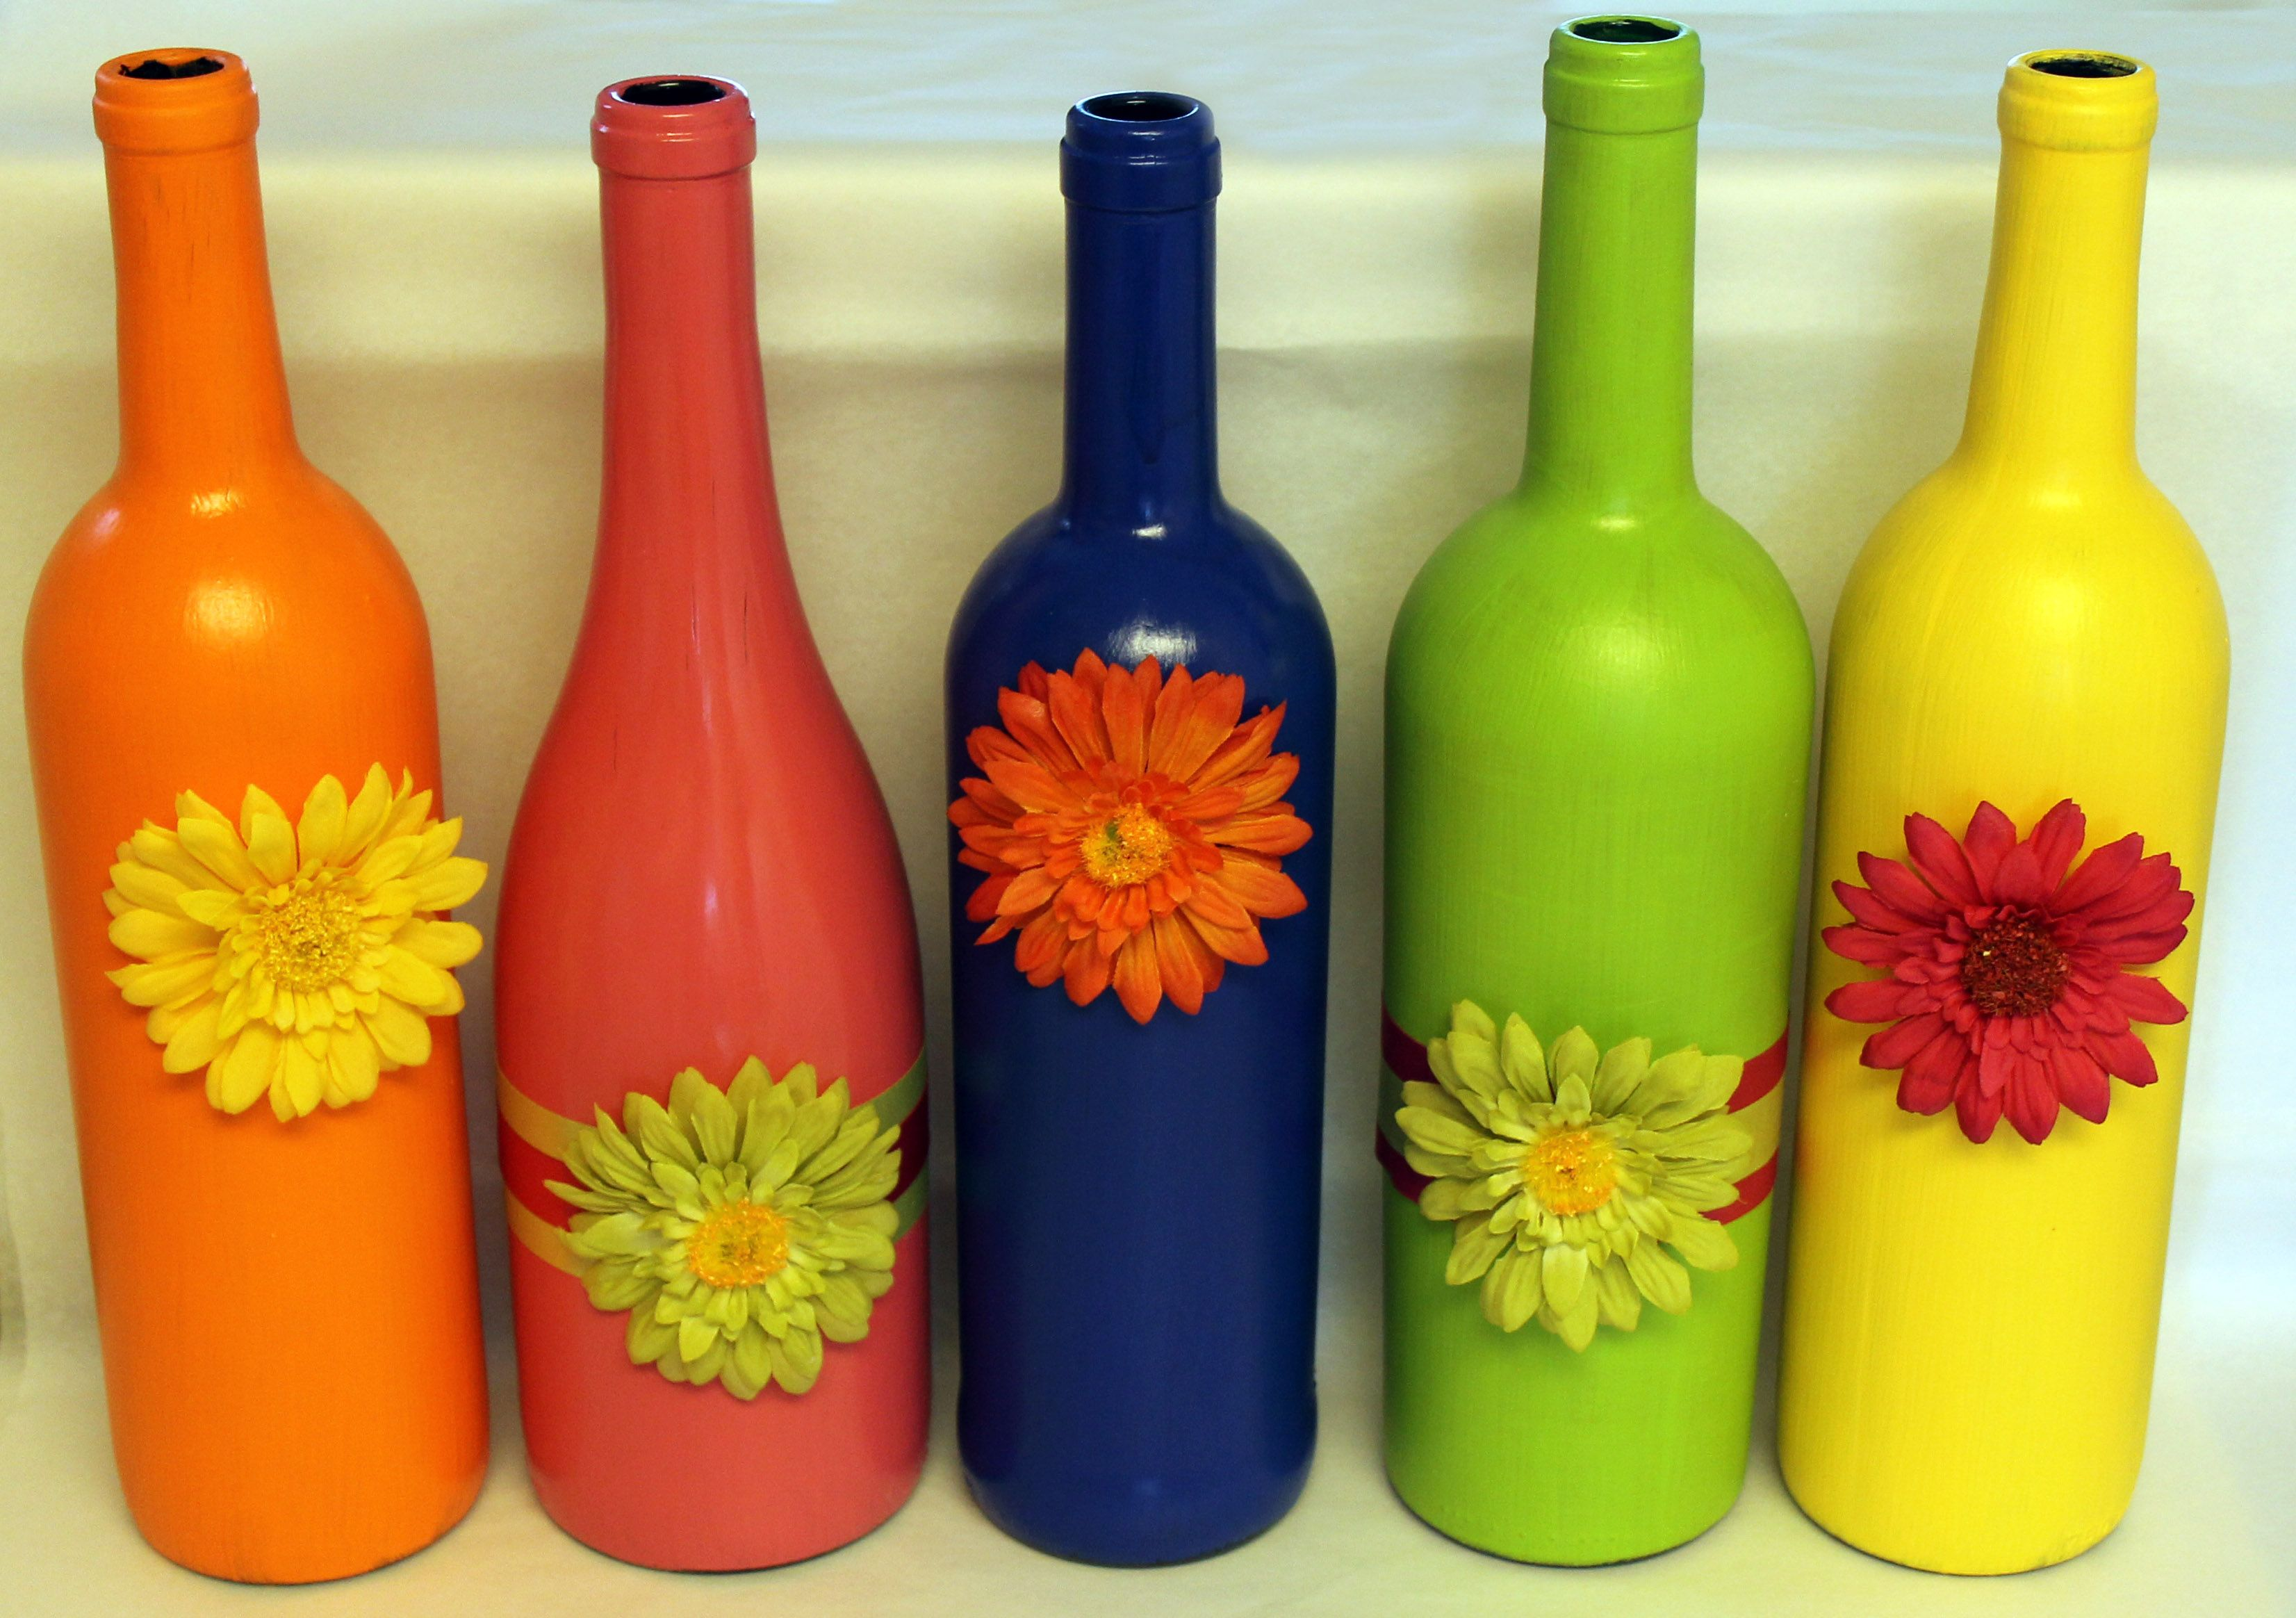 Pin By Kenise Miller On Bottles Bottle Crafts Wine Bottle Crafts Easter Wine Bottles